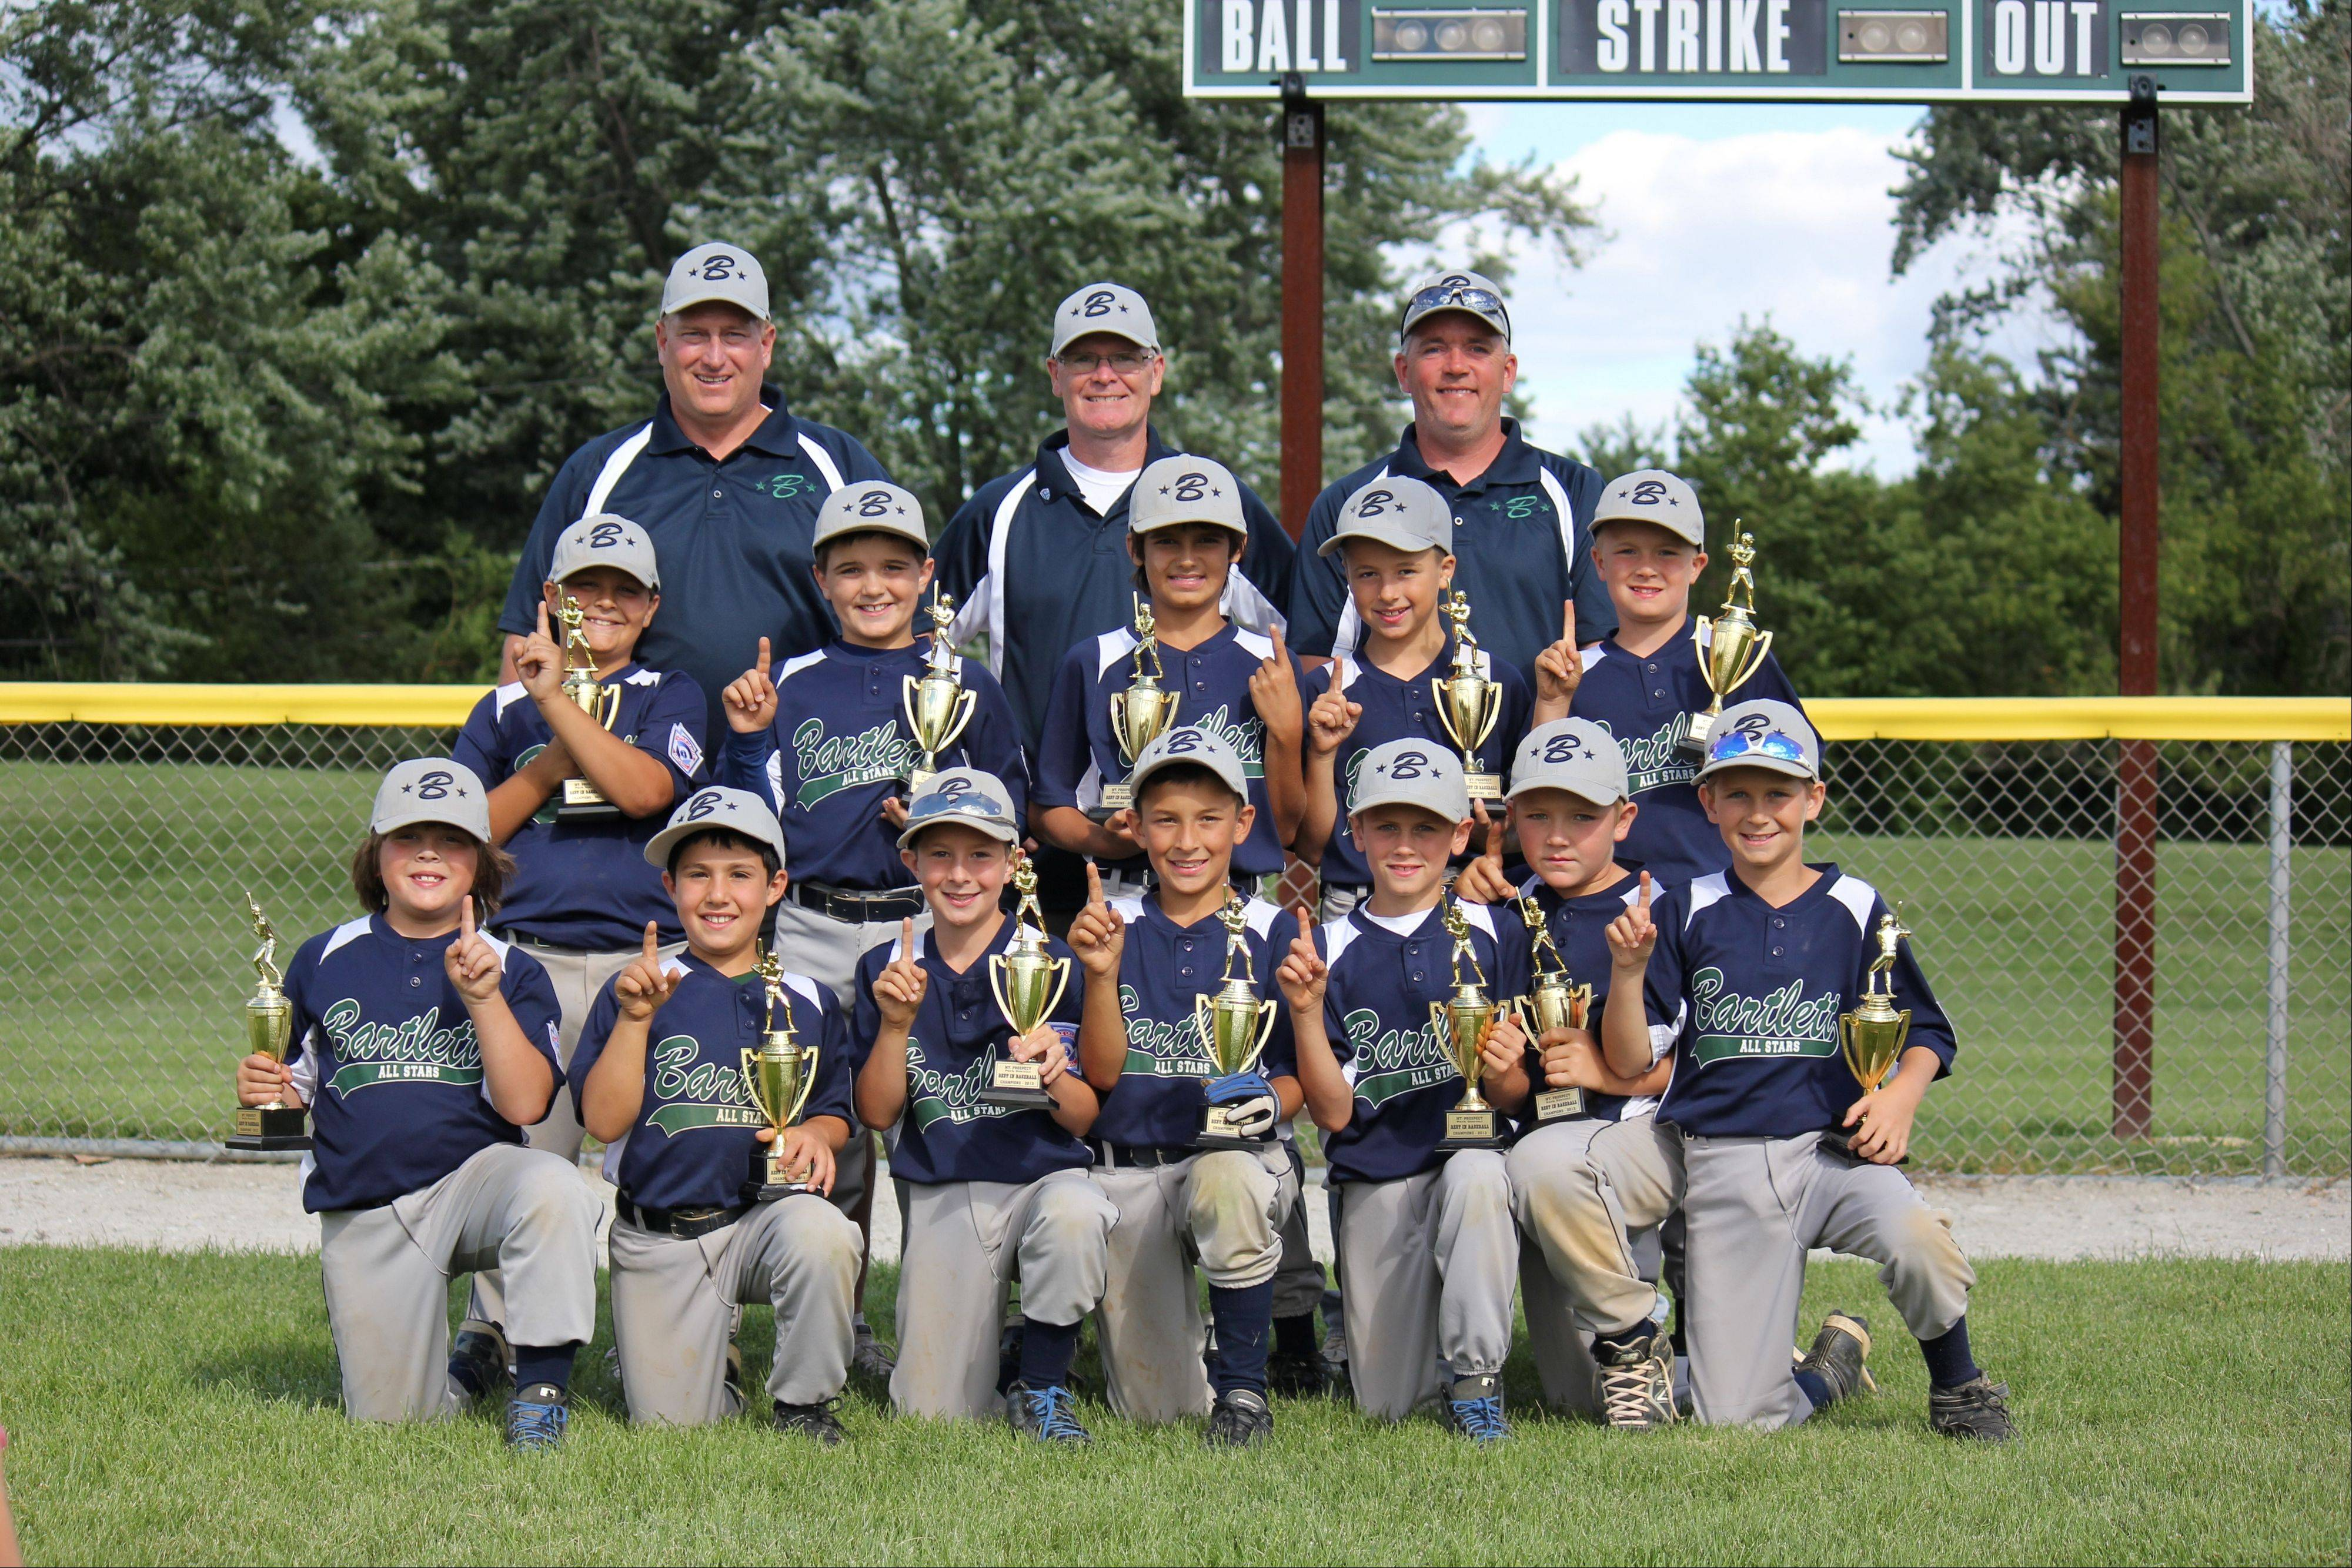 The Bartlett Blue 9U, from left, are: Front row: Josh Schuberth, Rocco Tenuta, Hayden Cook, Alex Mallinas, Aaron Wafford, Patrick Nelson and Jack Sampey; second row: Johnny Jiminez, Danny Angelone, Sam Atkins, Owen Cutinello and Kyle Swalley; third row: Coach John Wafford, coach Ron Nelson and coach Rob Swalley. Not pictured is head coach Shane Cook.